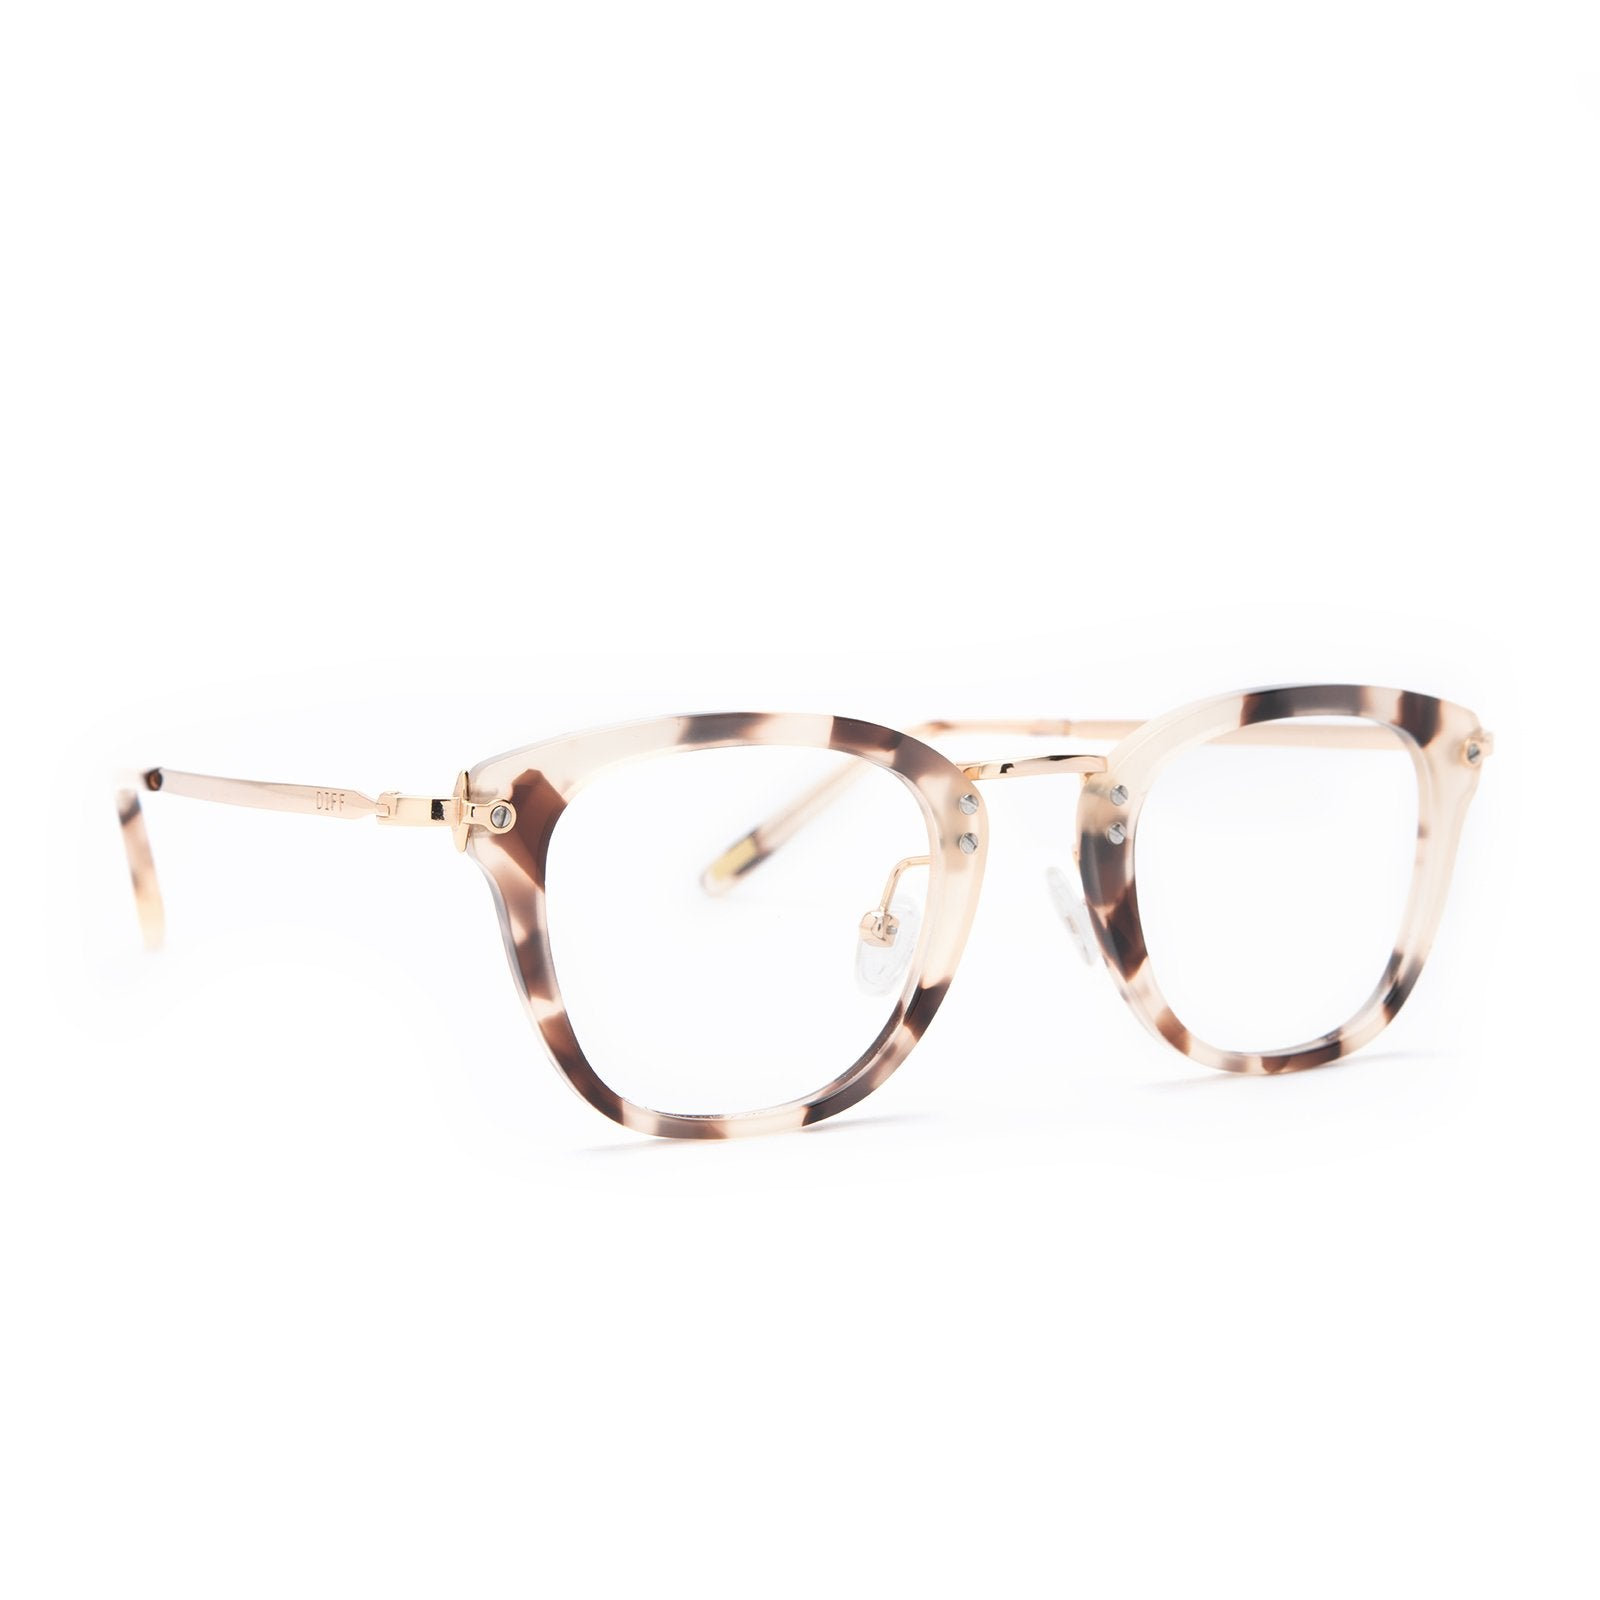 Rue glasses with cream tortoise frames and blue light technology angle view